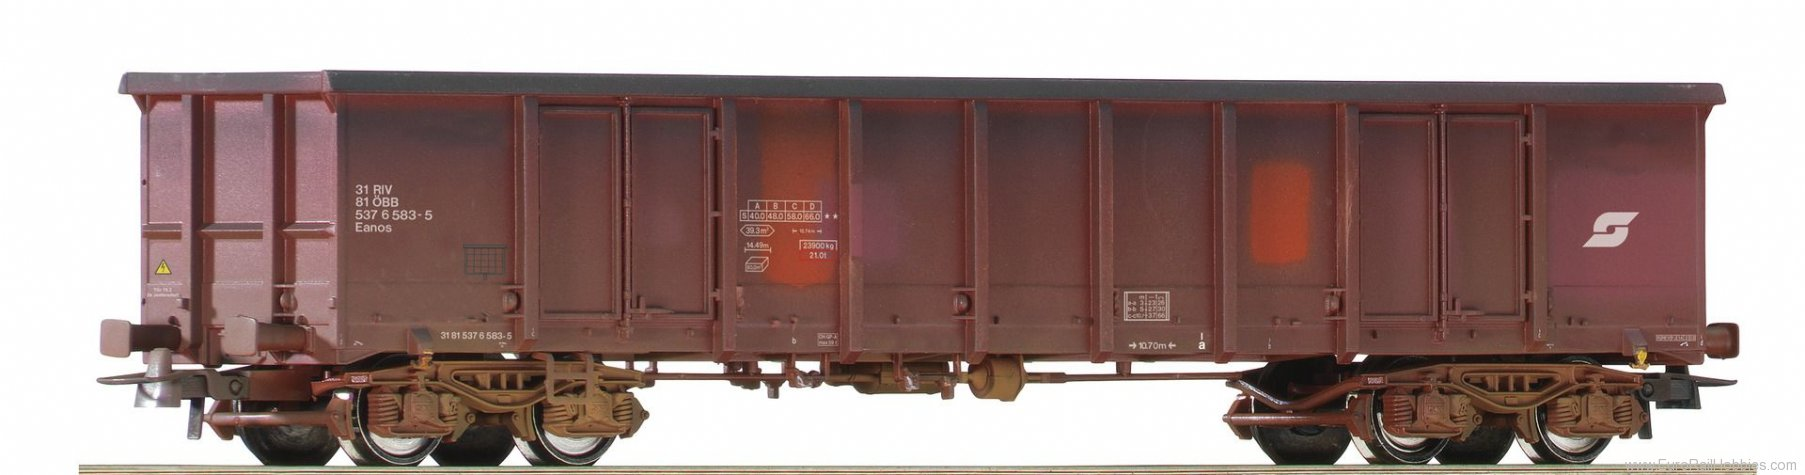 Roco 75989 31815376 502-5, open goods wagon weathered, O